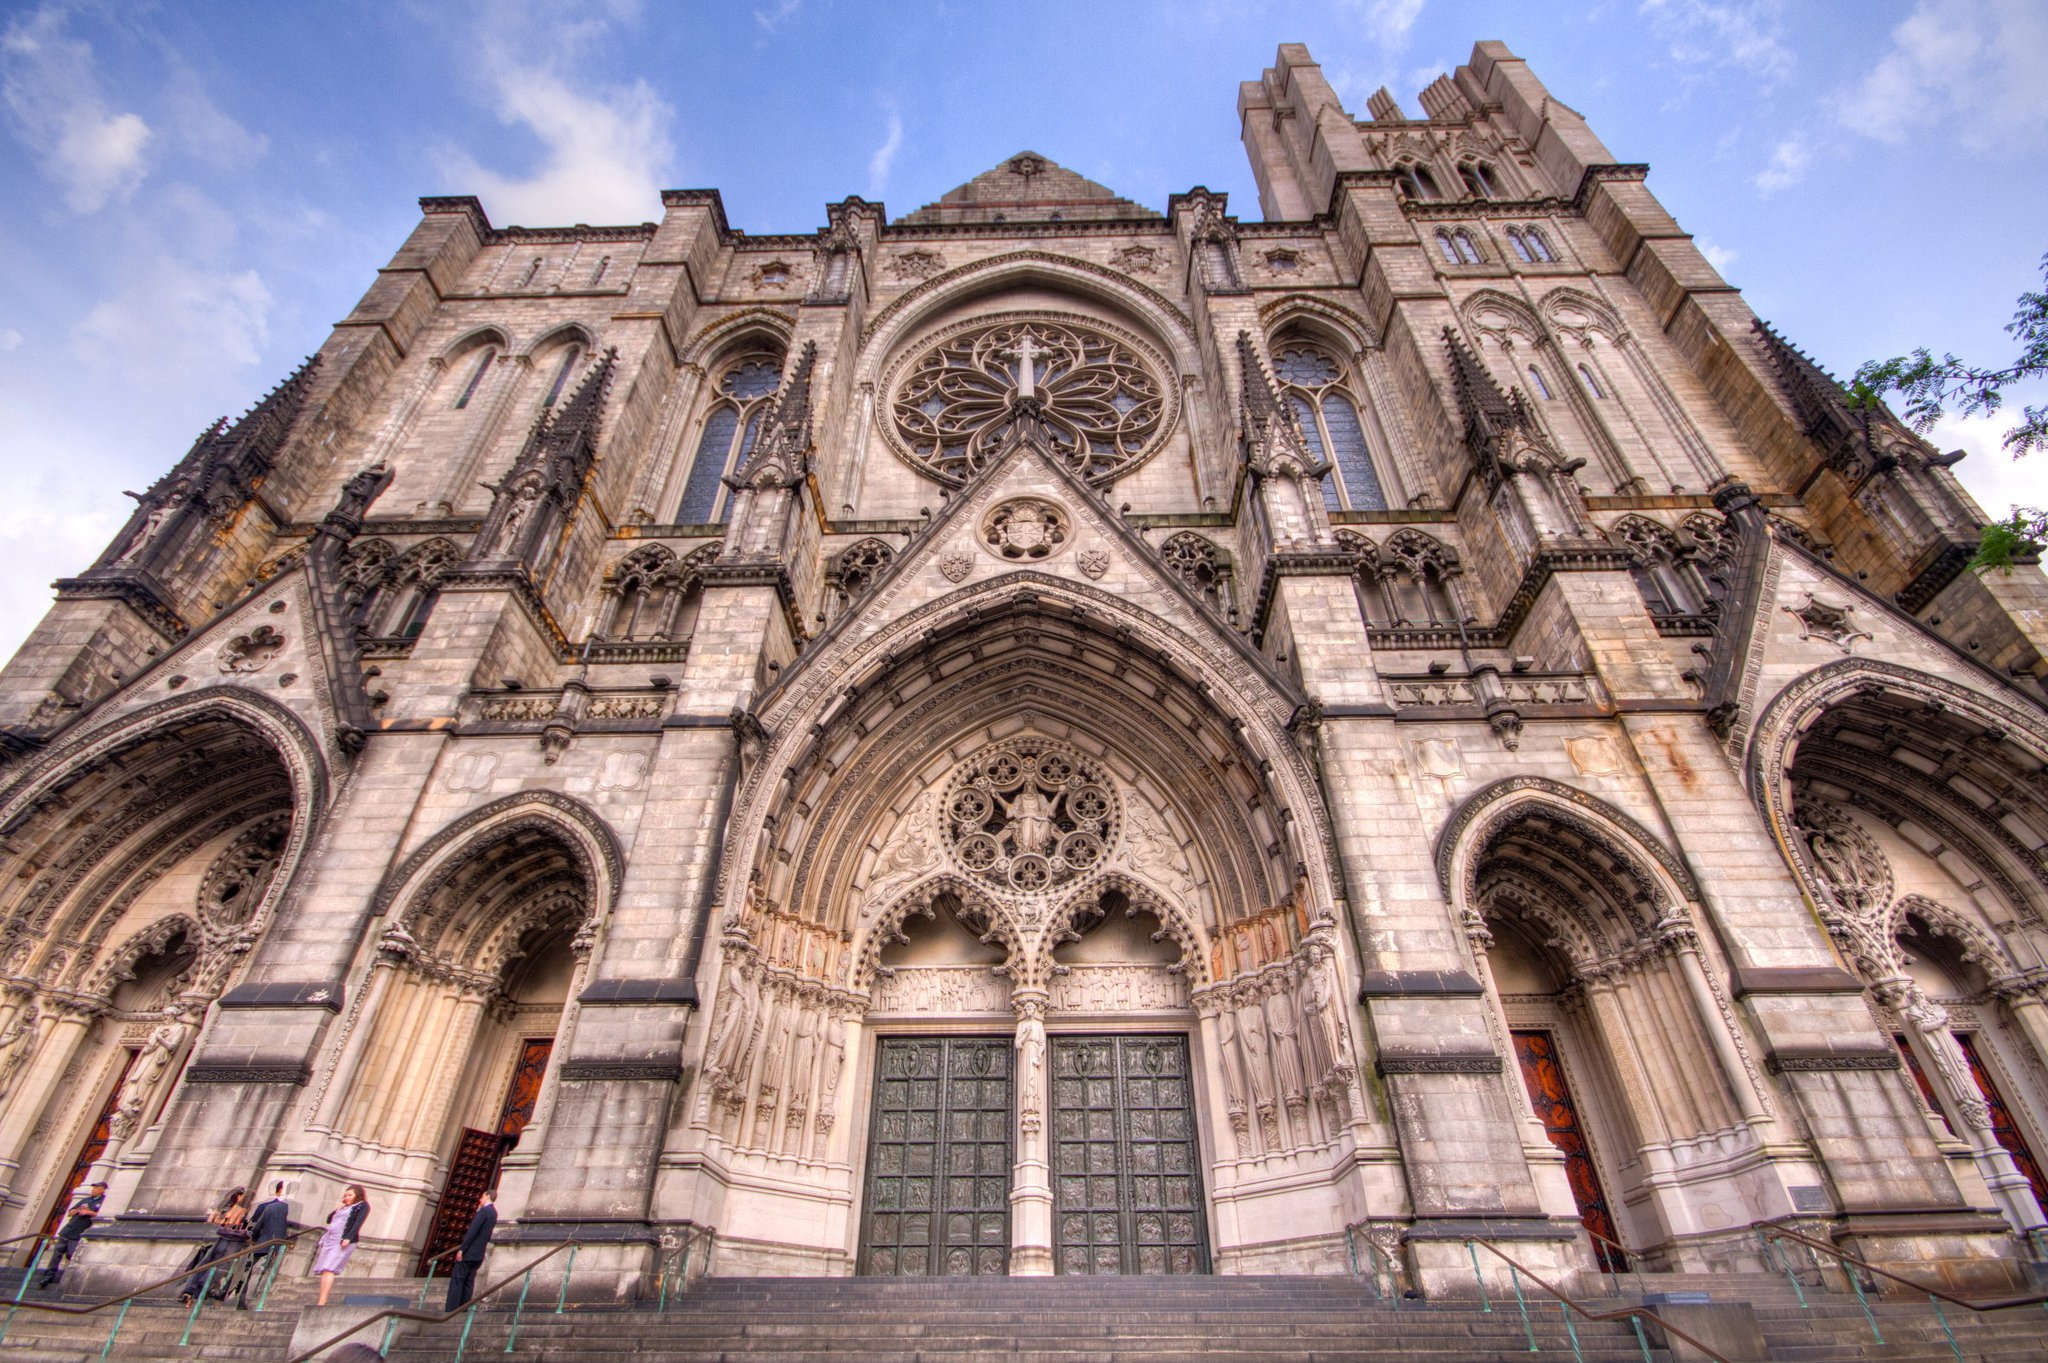 St. John's Cathedral - New York, NY